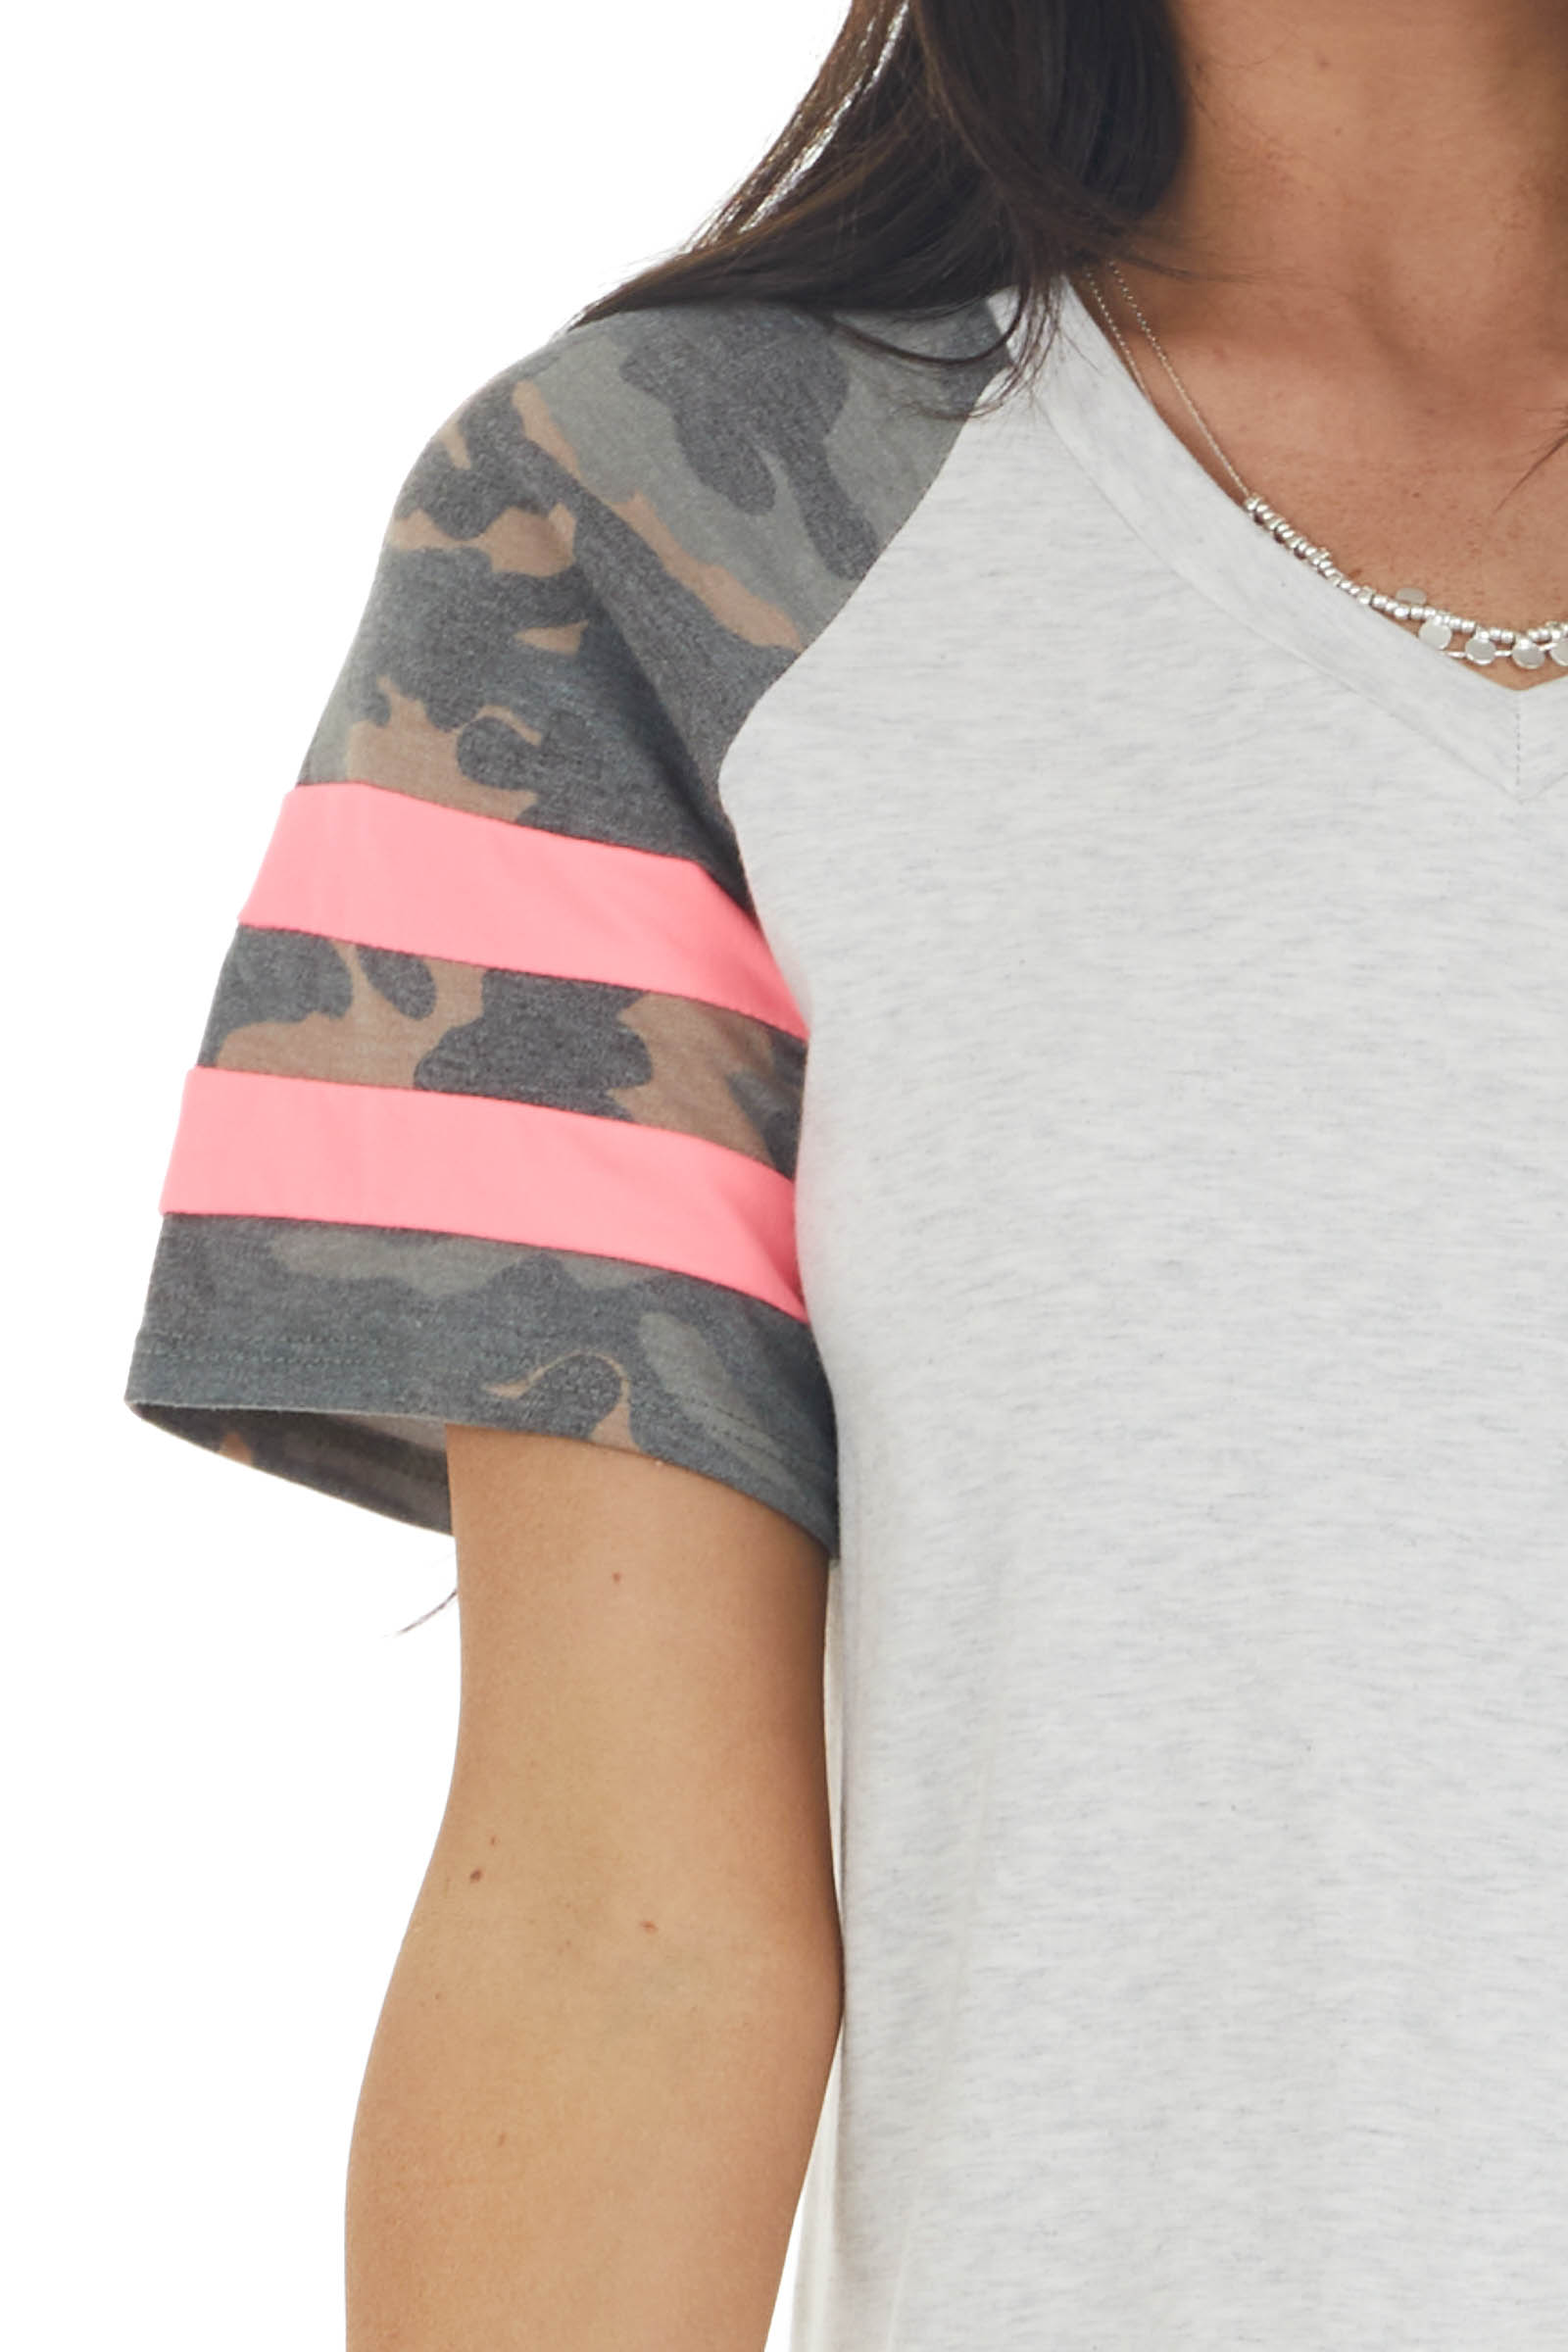 Heather Grey Short Sleeve Top with Camo Print Detail